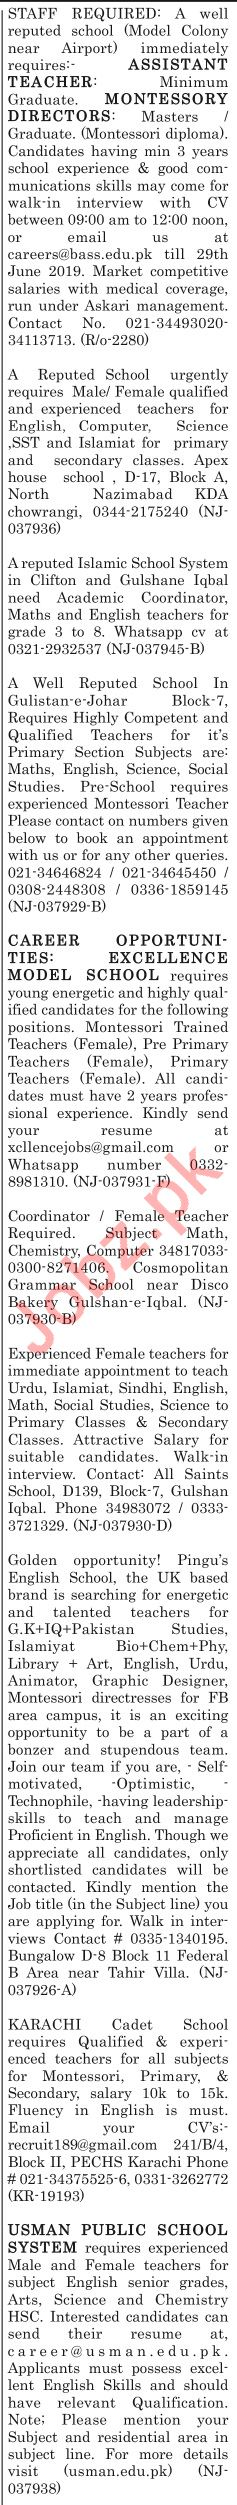 The News Sunday Classified Ads 23rd June 2019 for Teachers